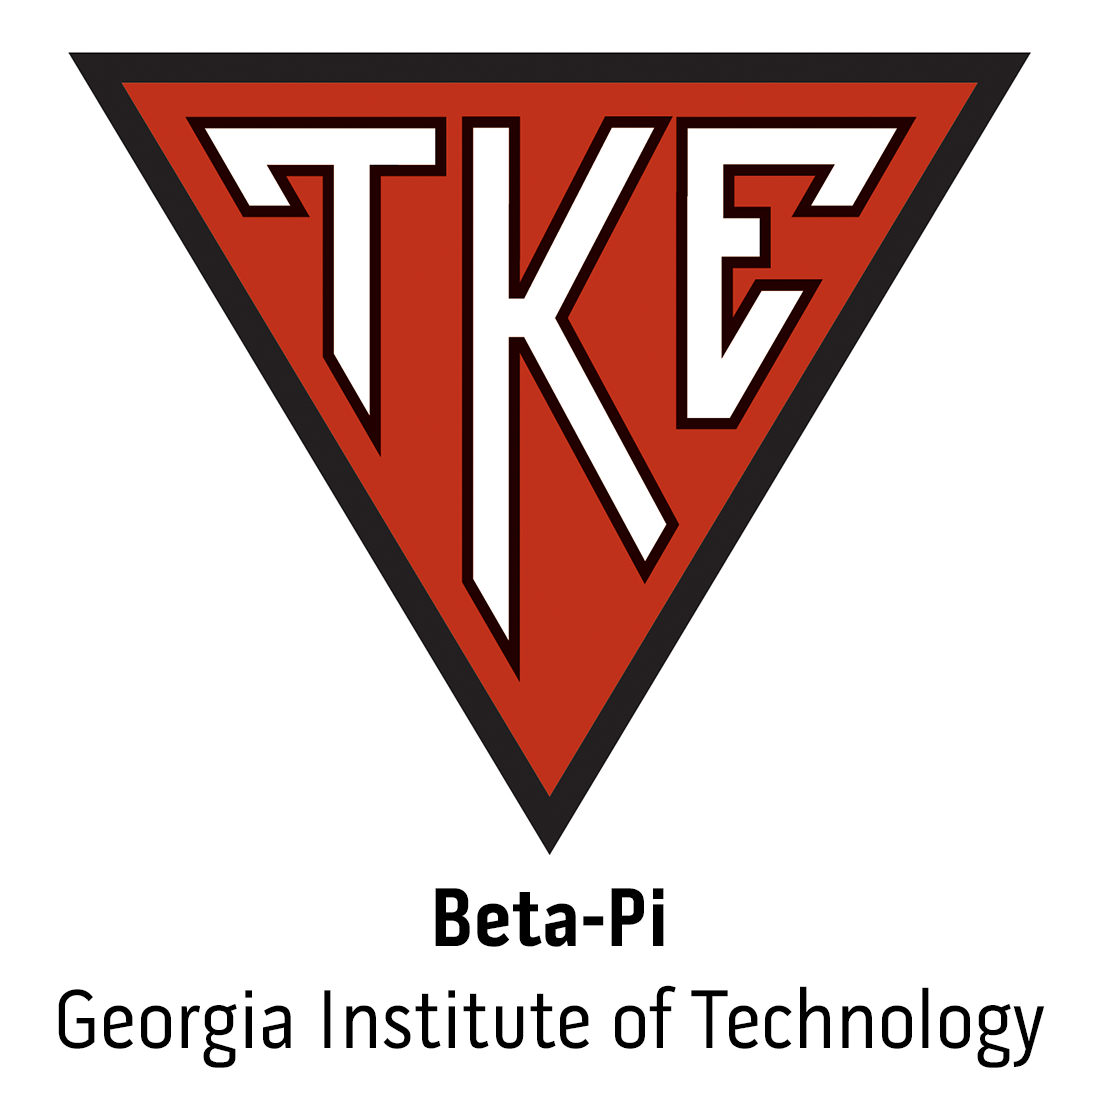 Beta-Pi Chapter at Georgia Institute of Technology